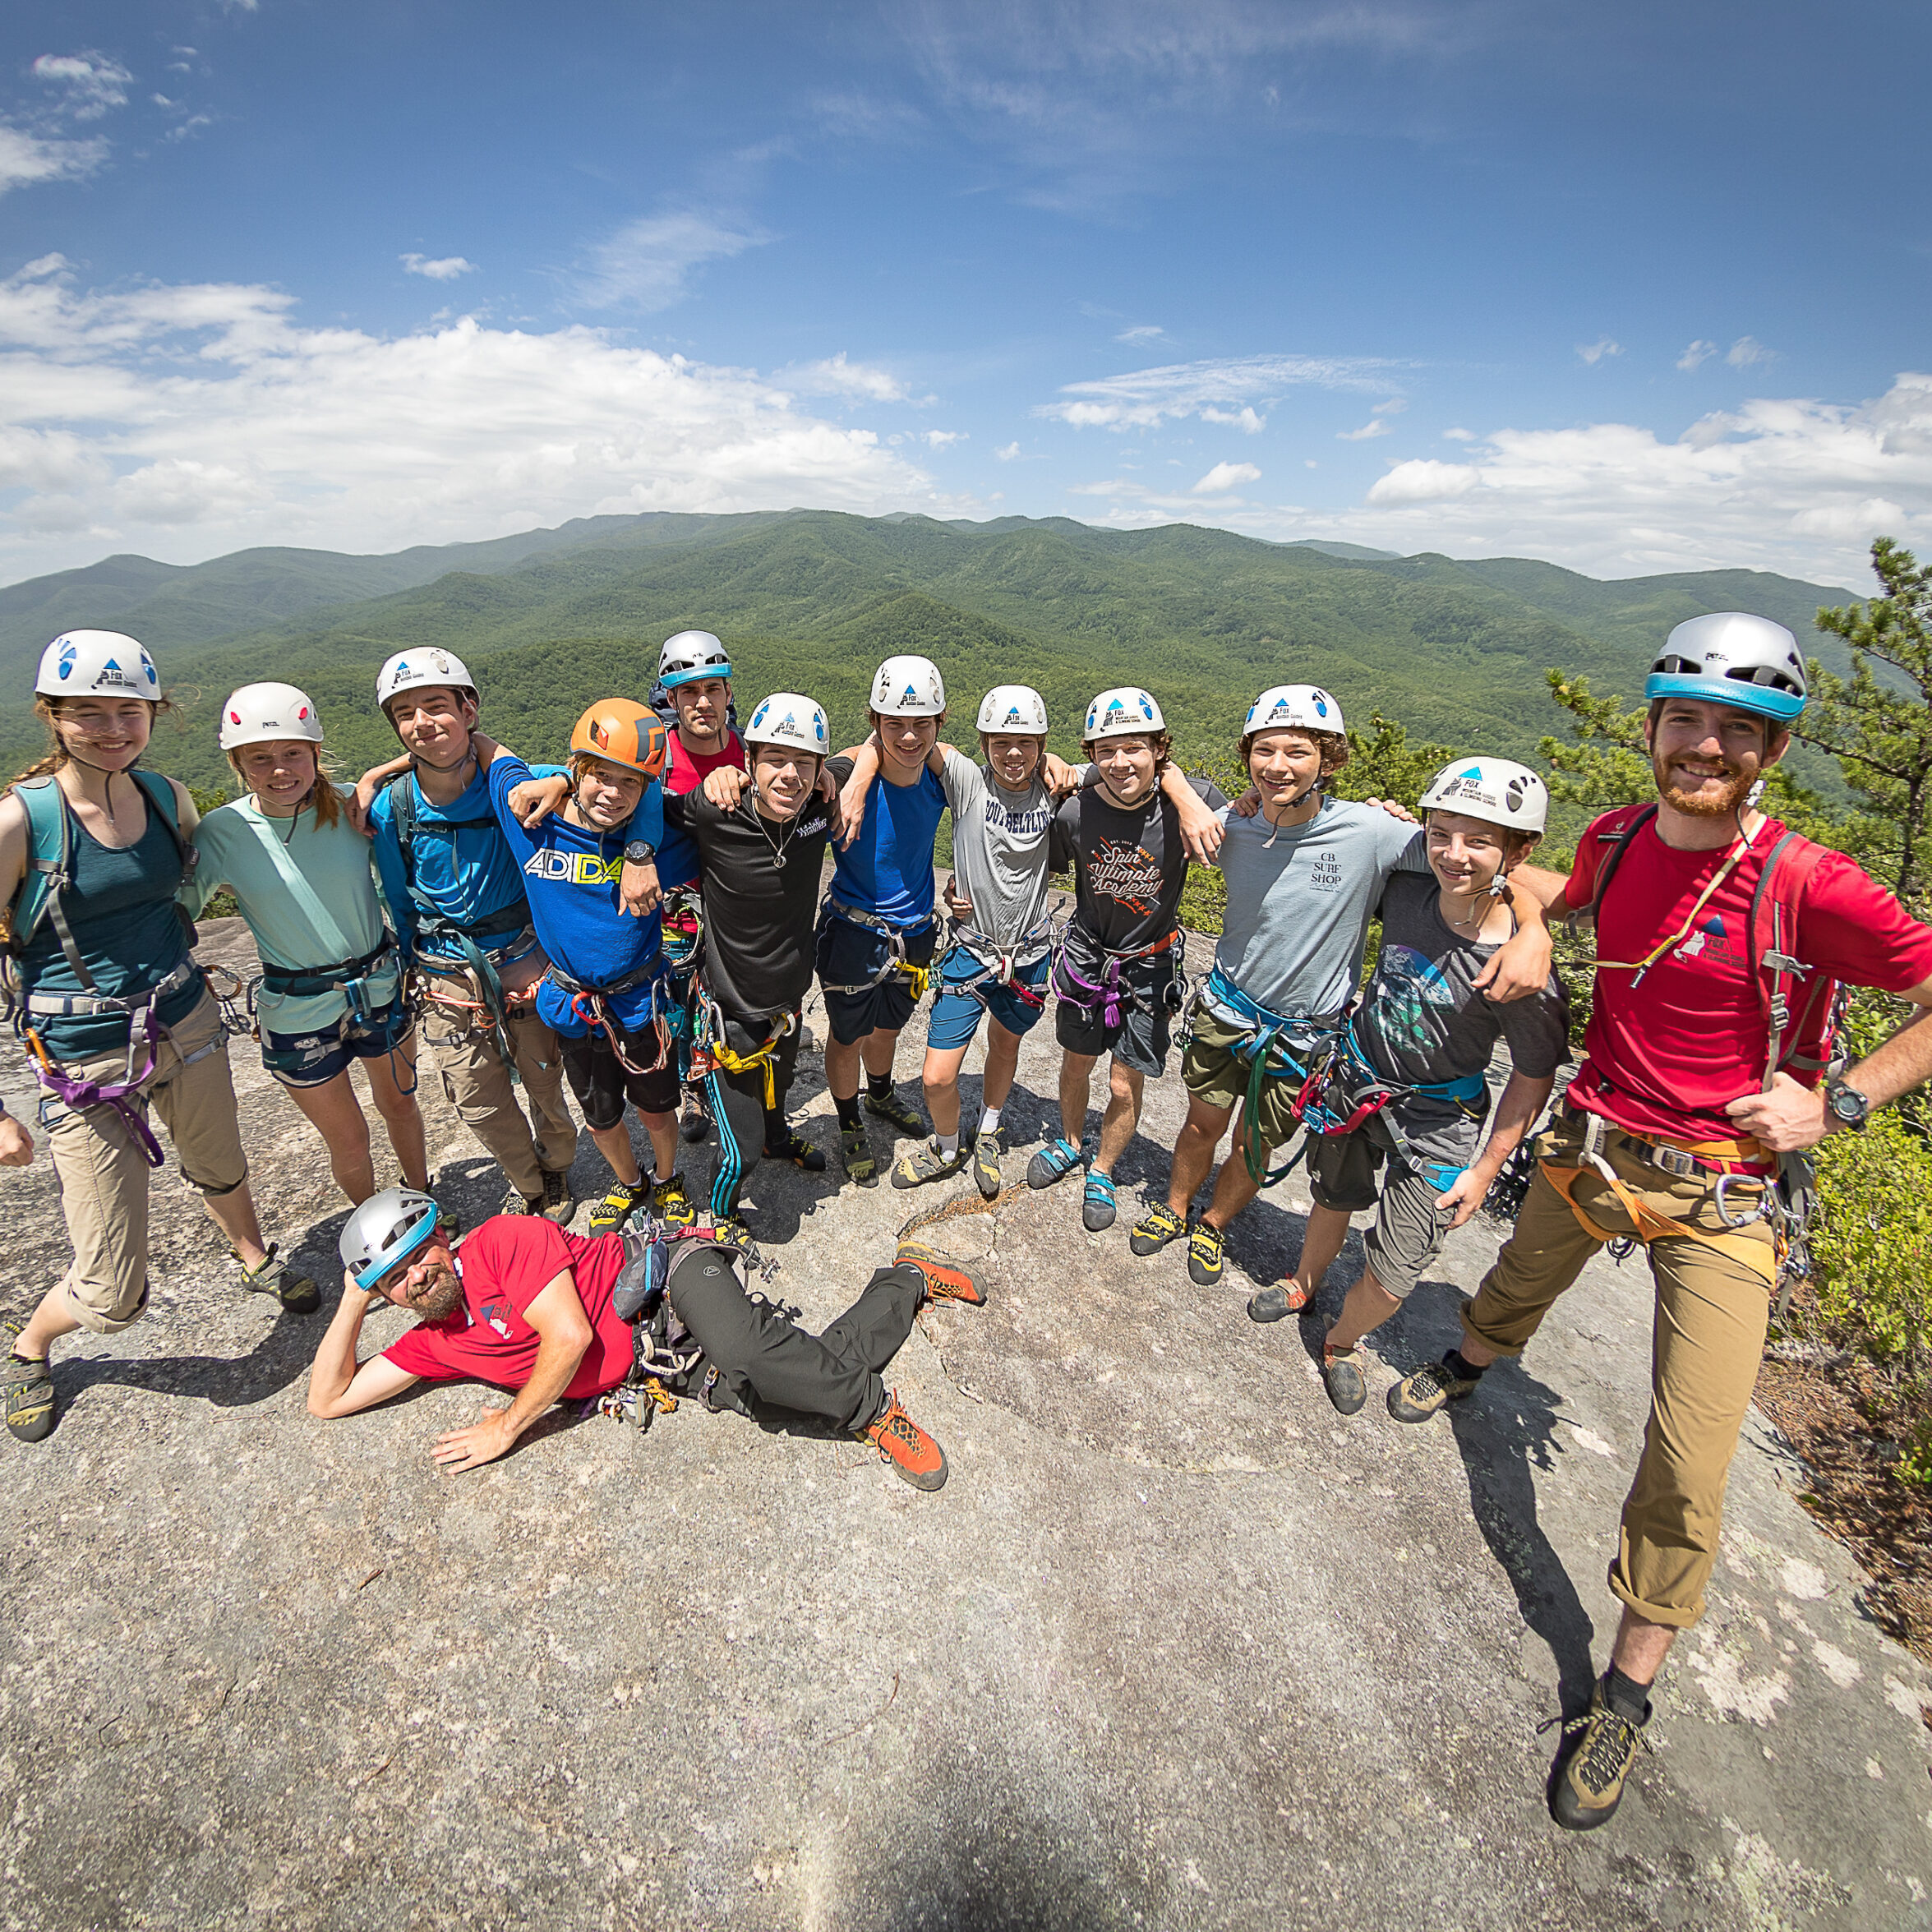 Group Rock Climb